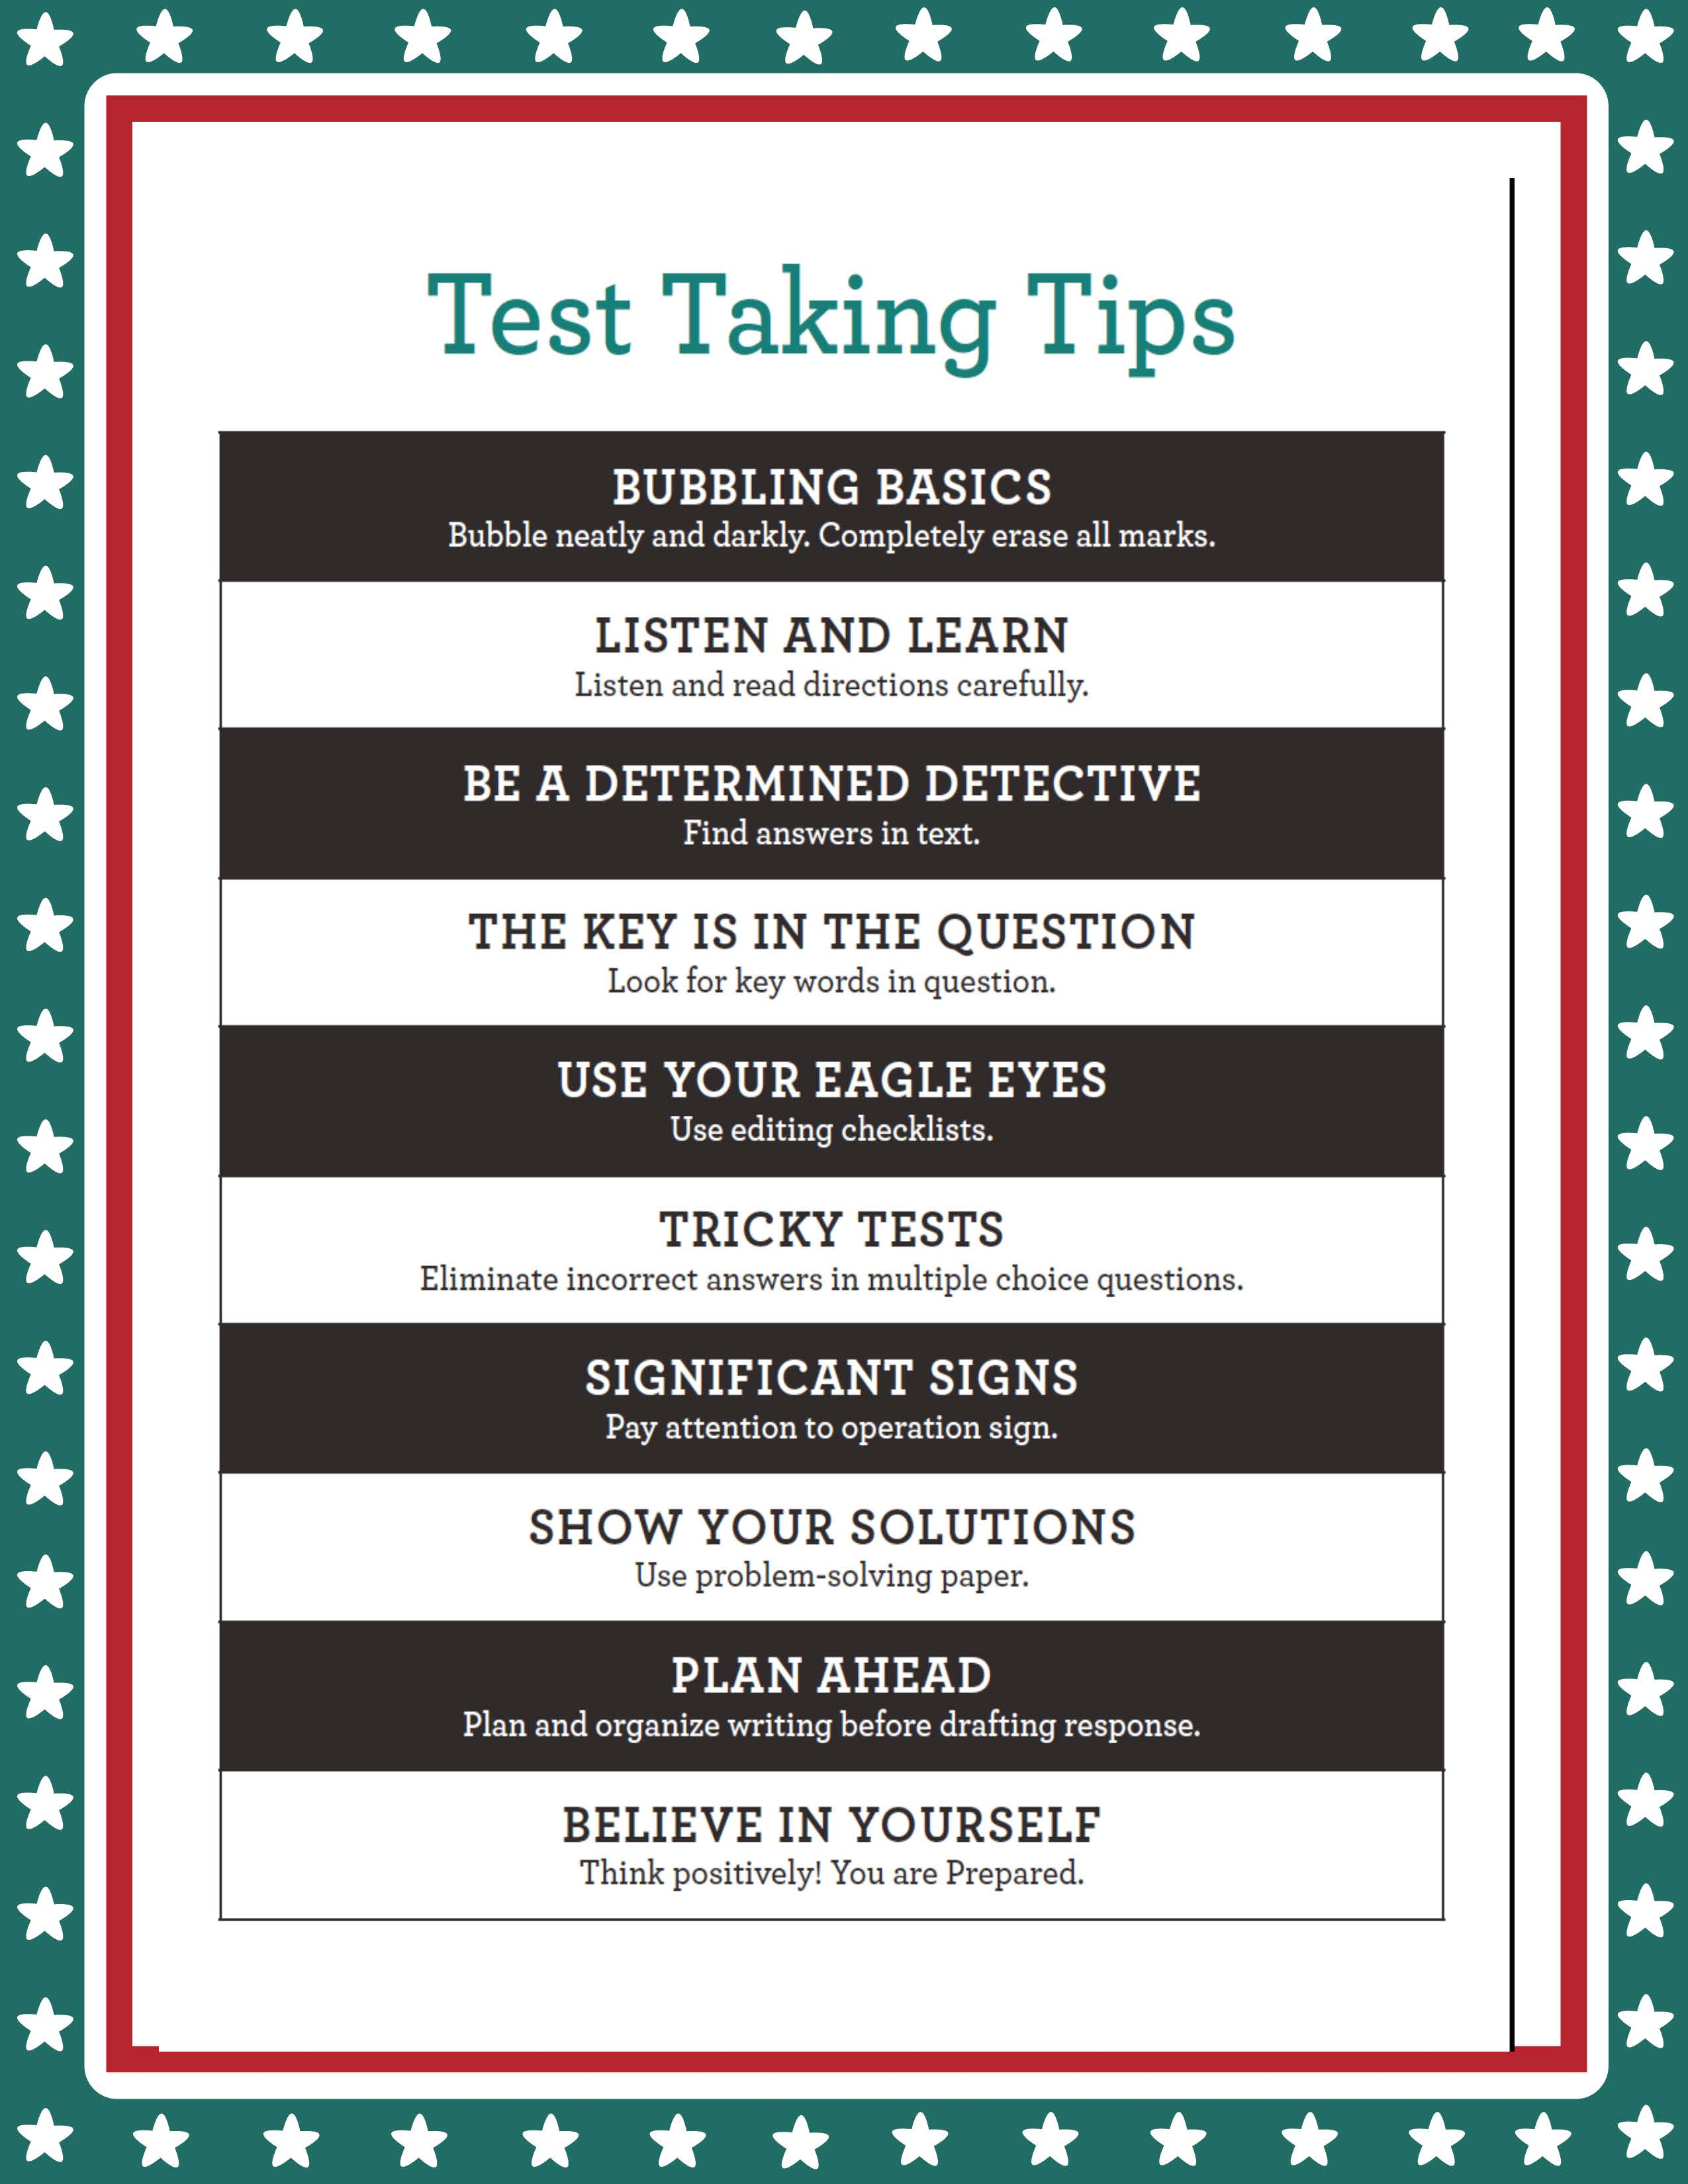 quiz taking tips The best free resource for test taking tips and strategies along with advice on  note taking, studying, cramming, reducing test anxiety, and more.